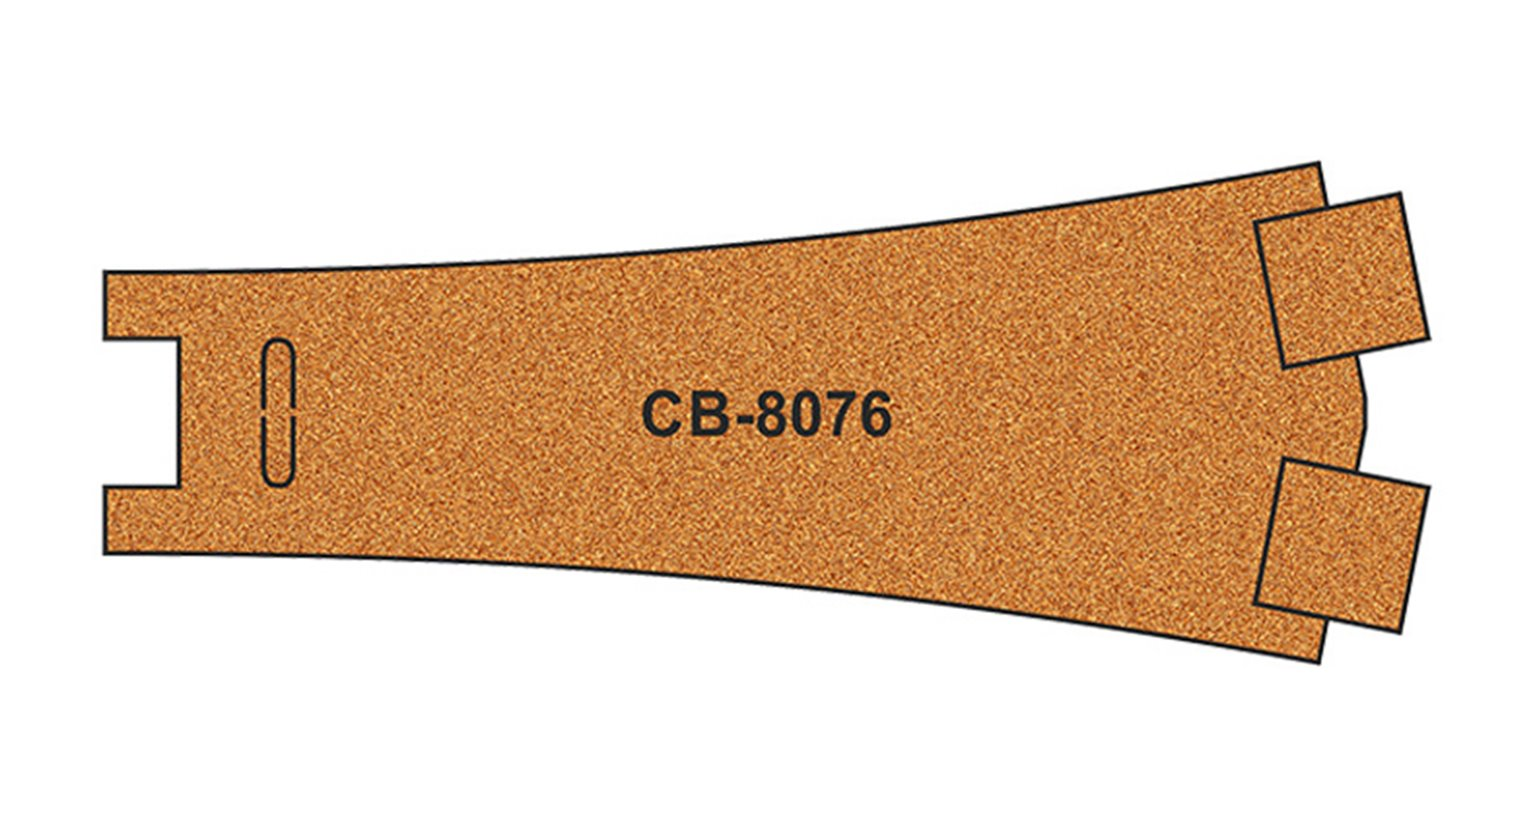 10 X Pre-Cut Cork Bed for R8076 Y Point